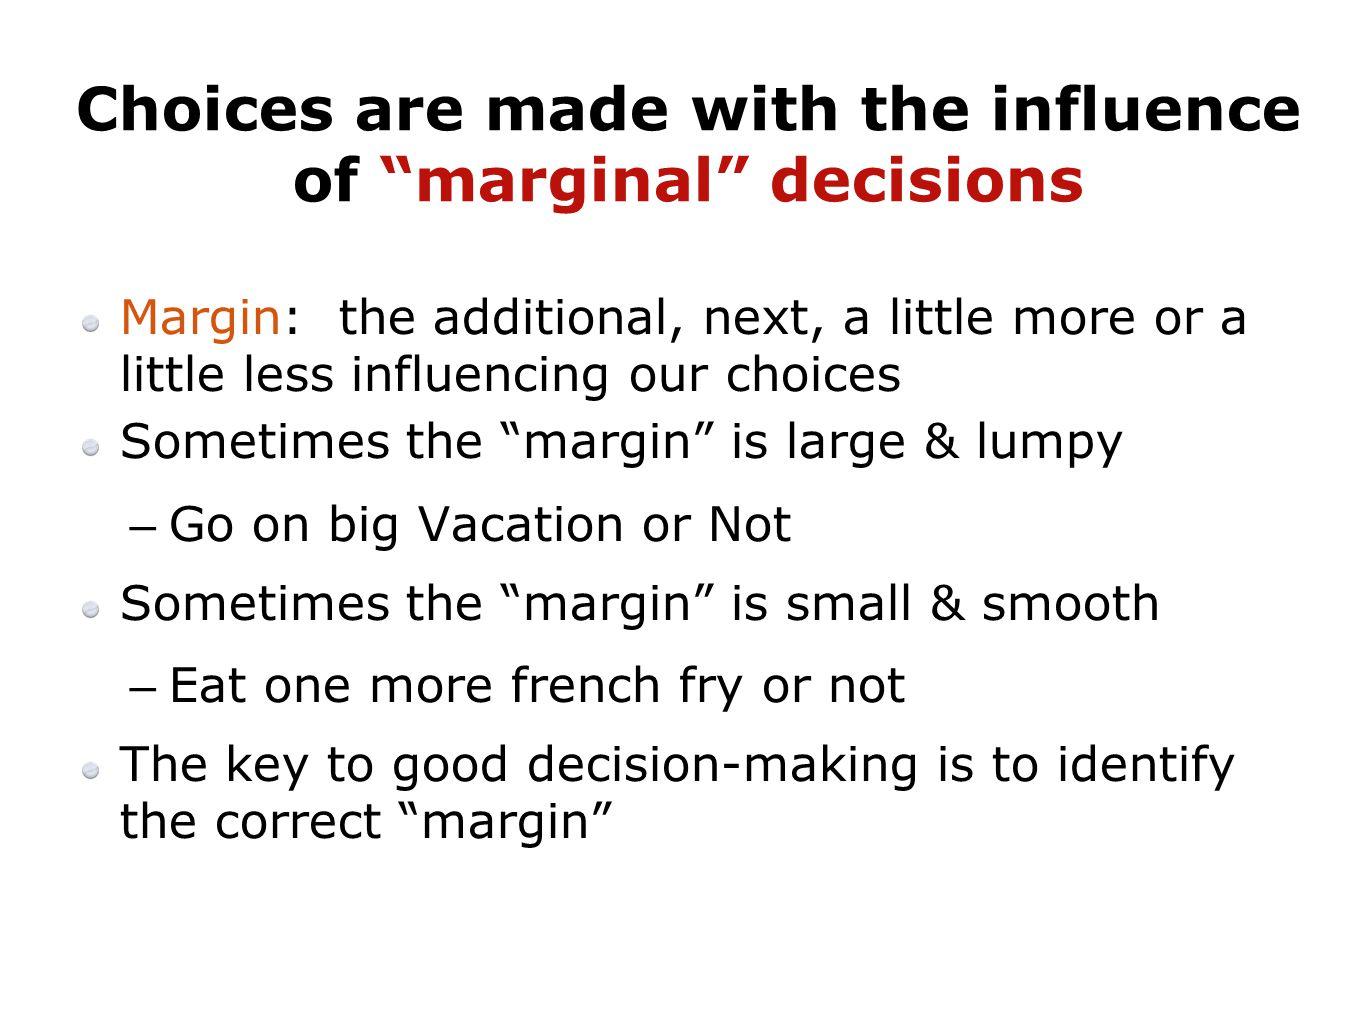 Margin: the additional, next, a little more or a little less influencing our choices Sometimes the margin is large & lumpy –Go on big Vacation or Not Sometimes the margin is small & smooth –Eat one more french fry or not The key to good decision-making is to identify the correct margin Choices are made with the influence of marginal decisions